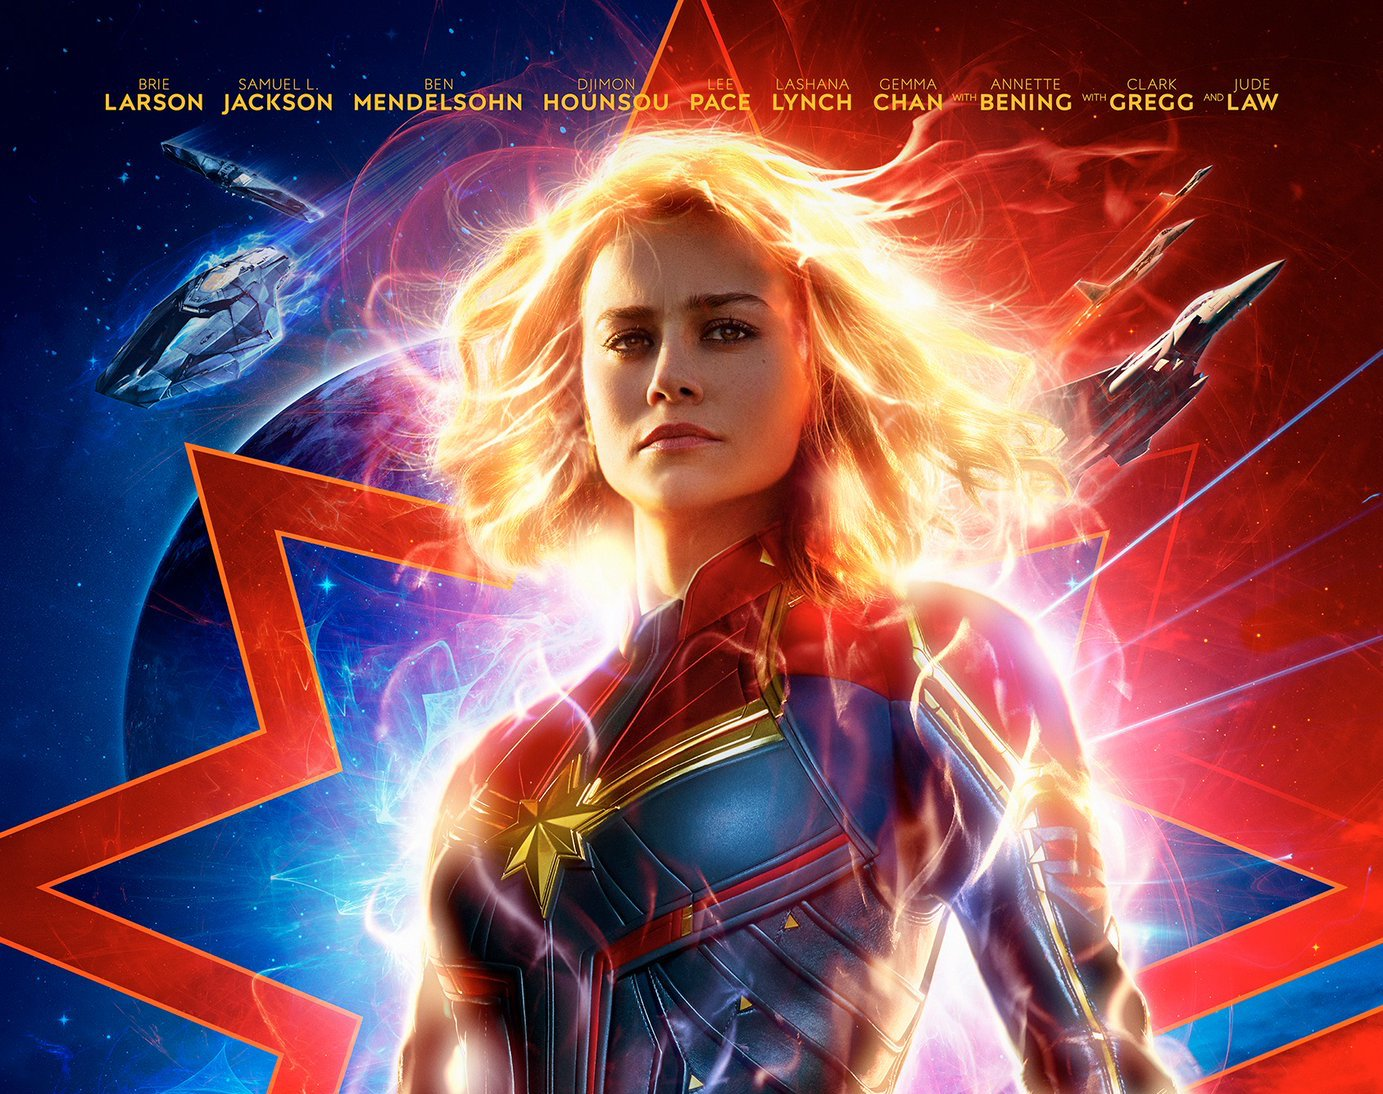 Check out the latest 'Captain Marvel' poster.